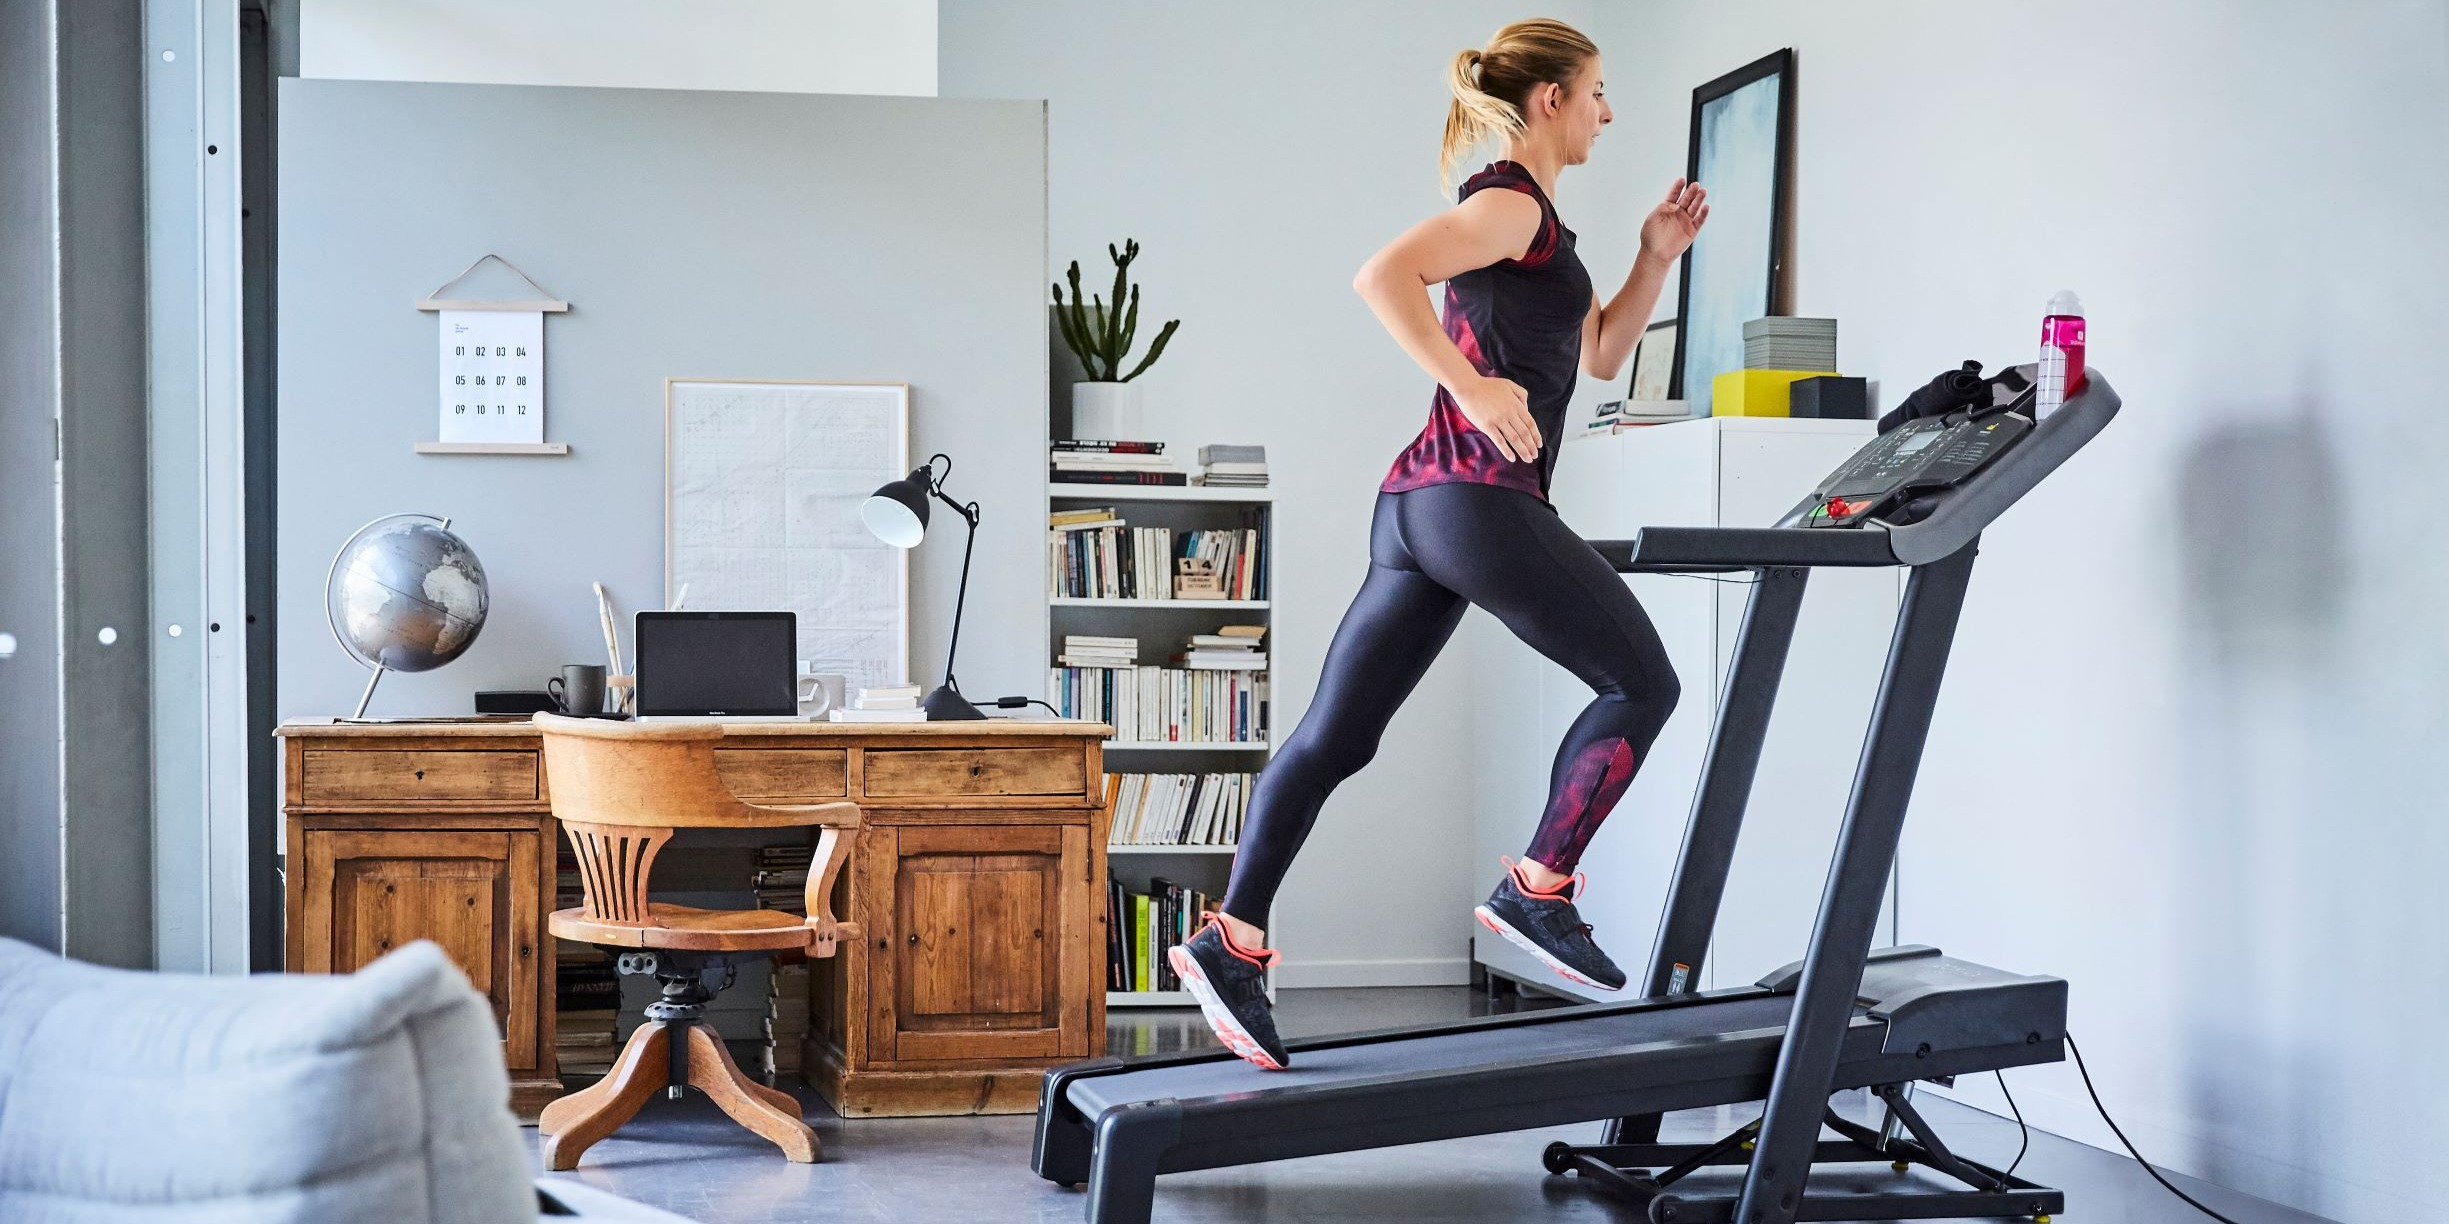 Bowflex Revolution Ft Home Gymnasium Benefits And Features Of Having This Home Gymnasium